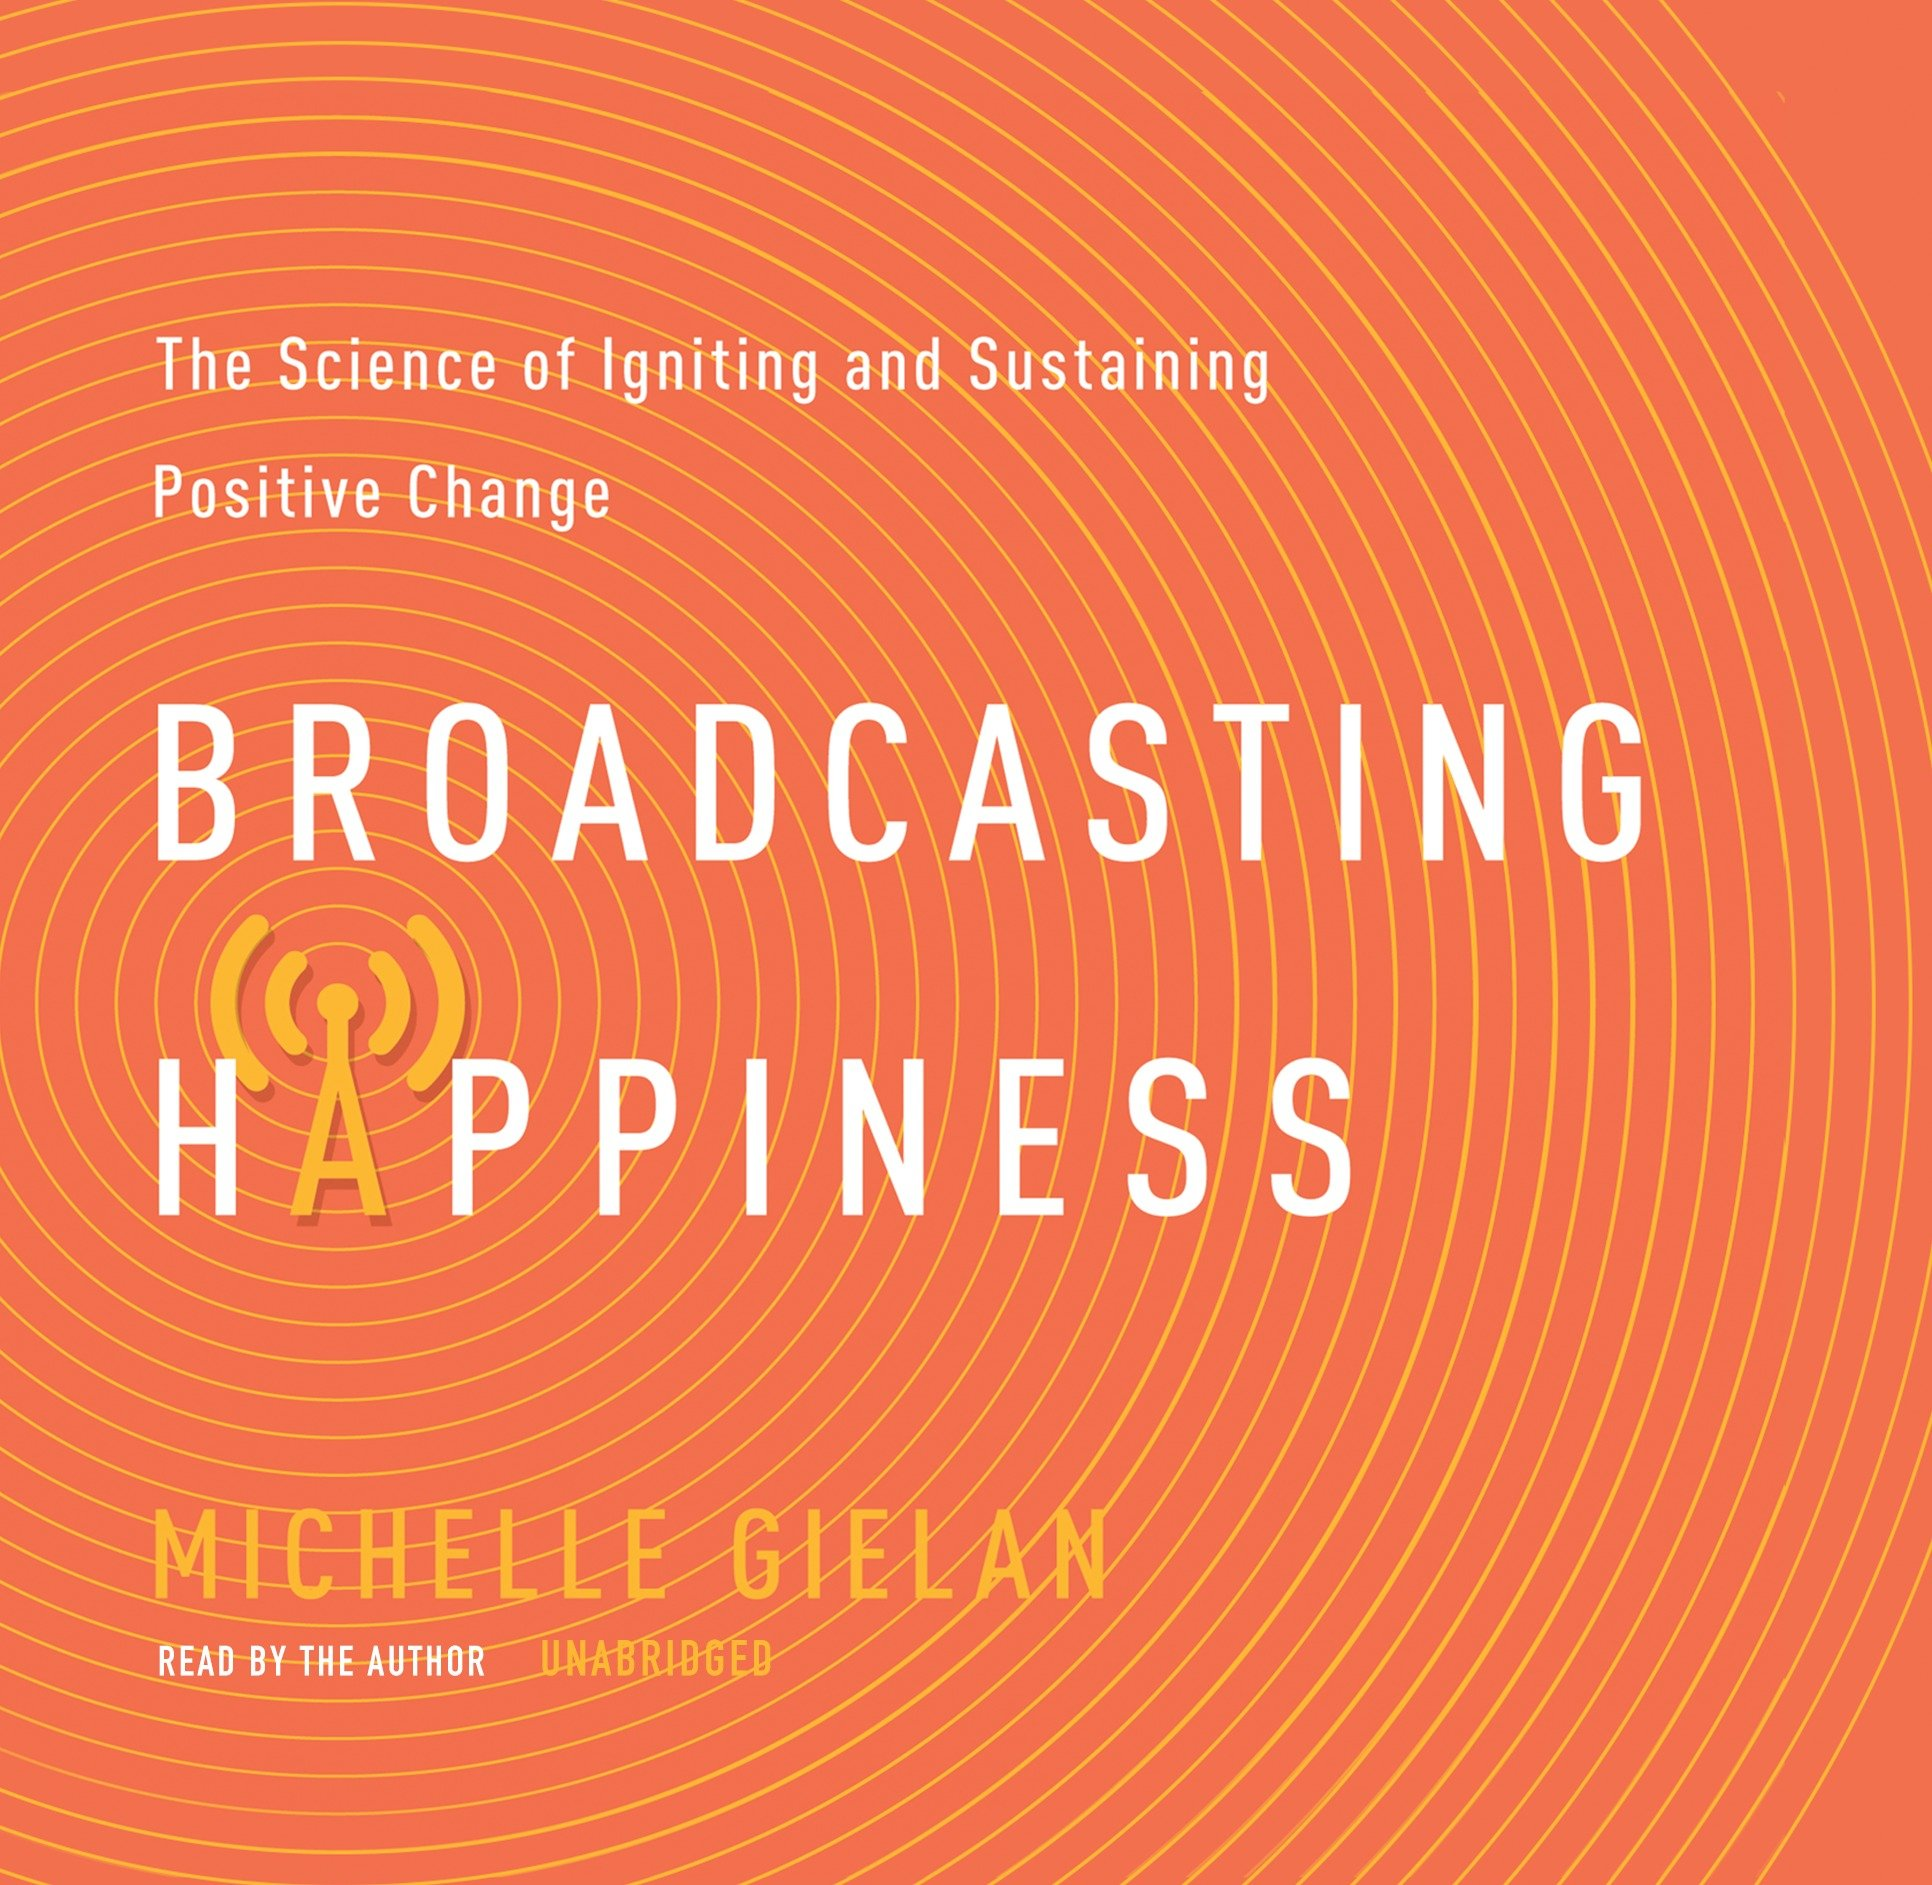 """Broadcasting Happiness"" by Michelle Gielan"